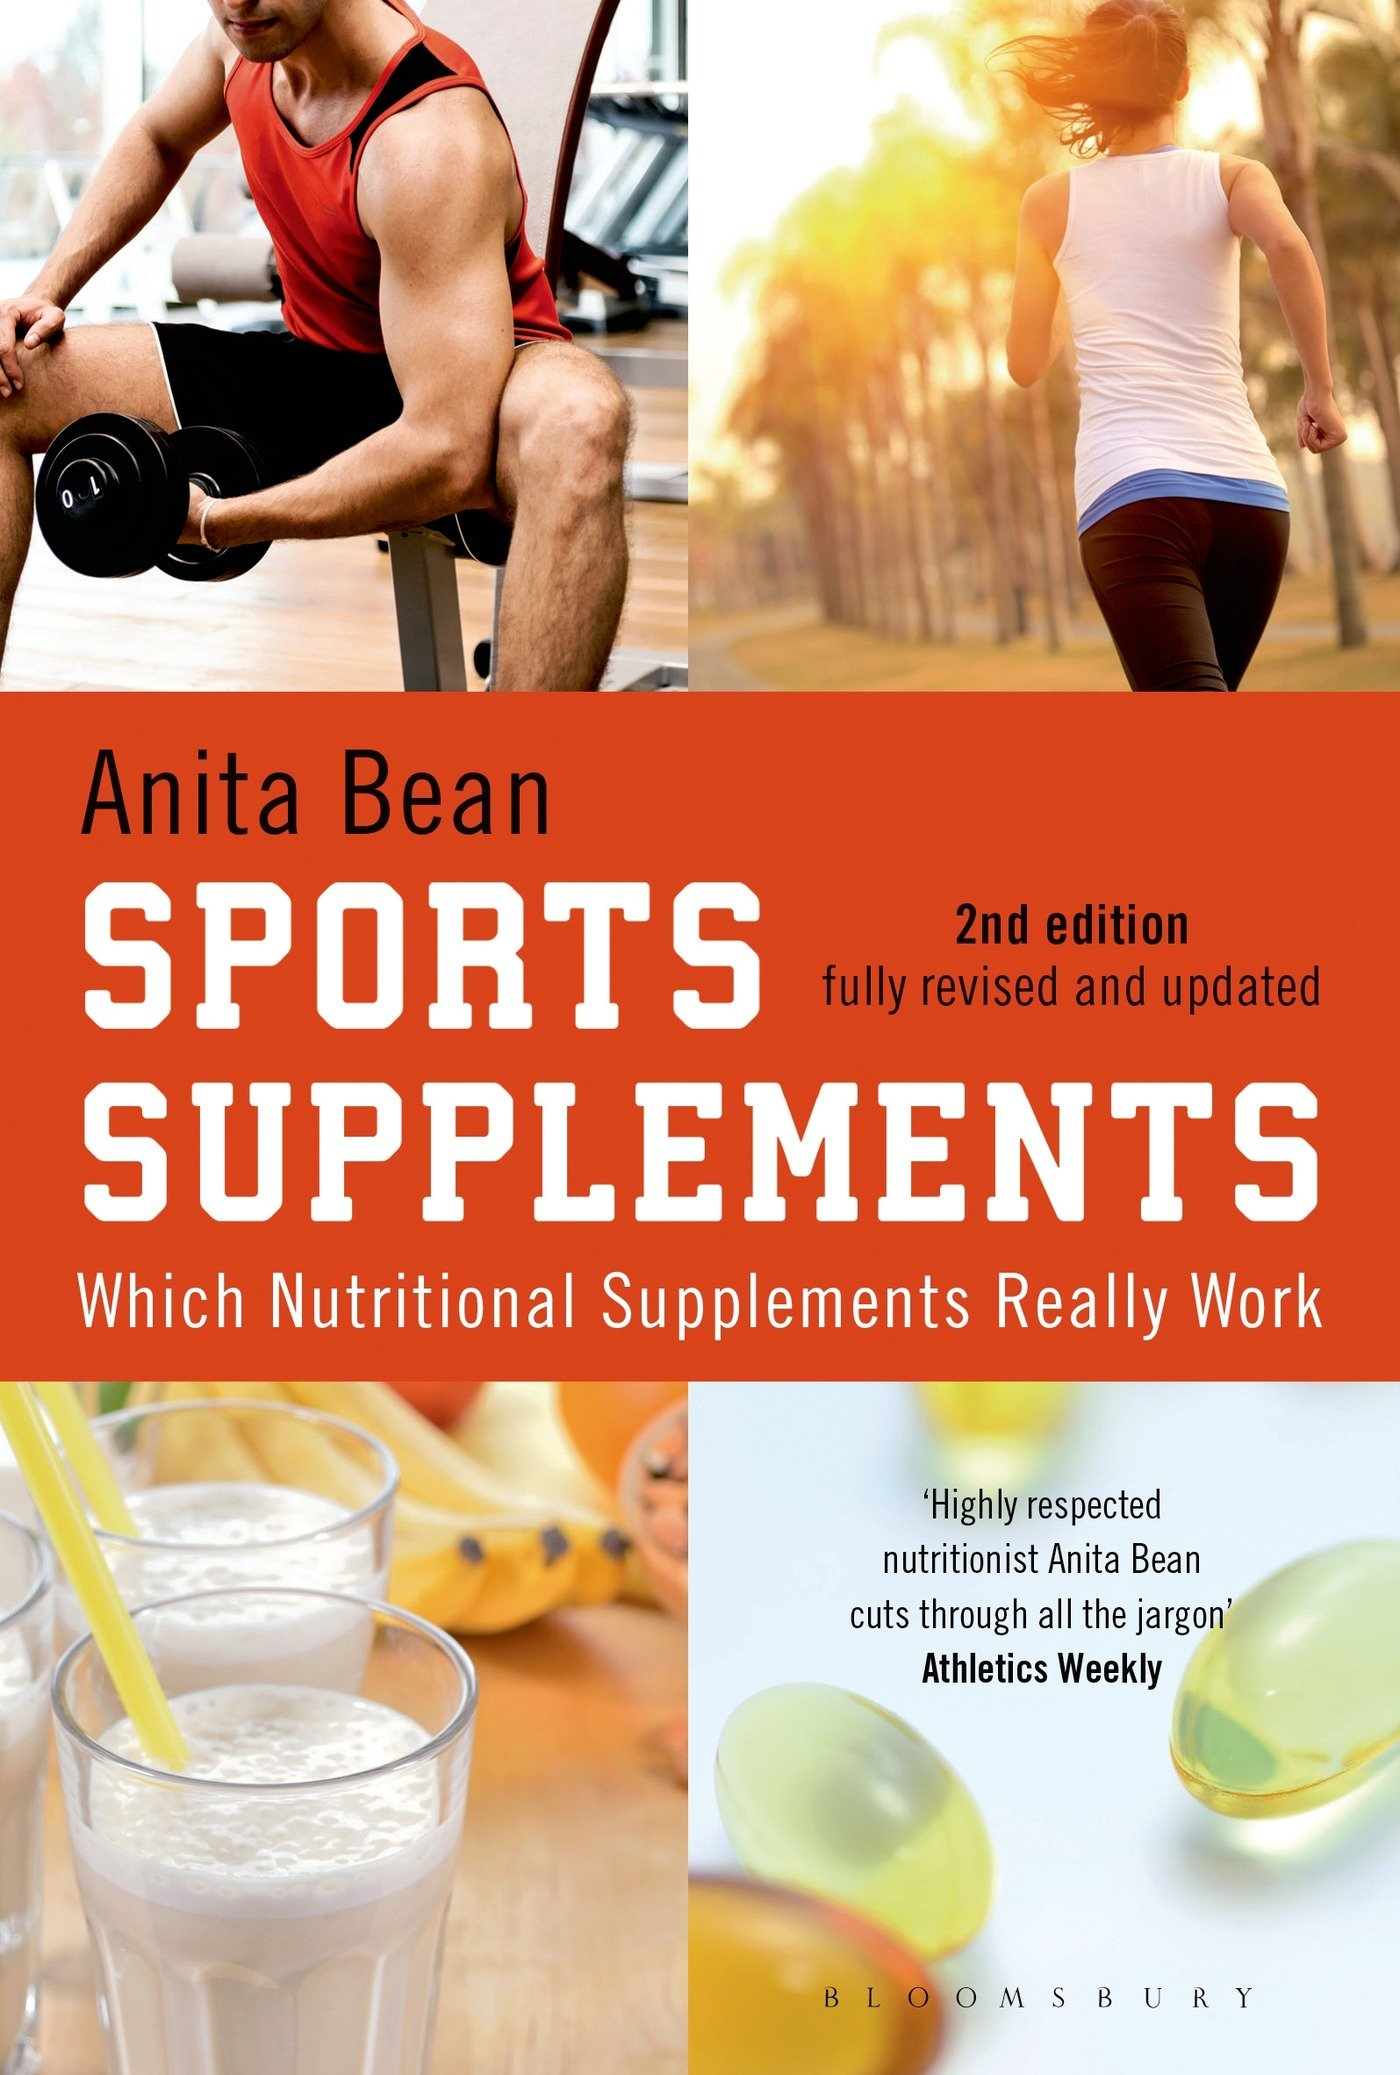 Read More From Anita Bean